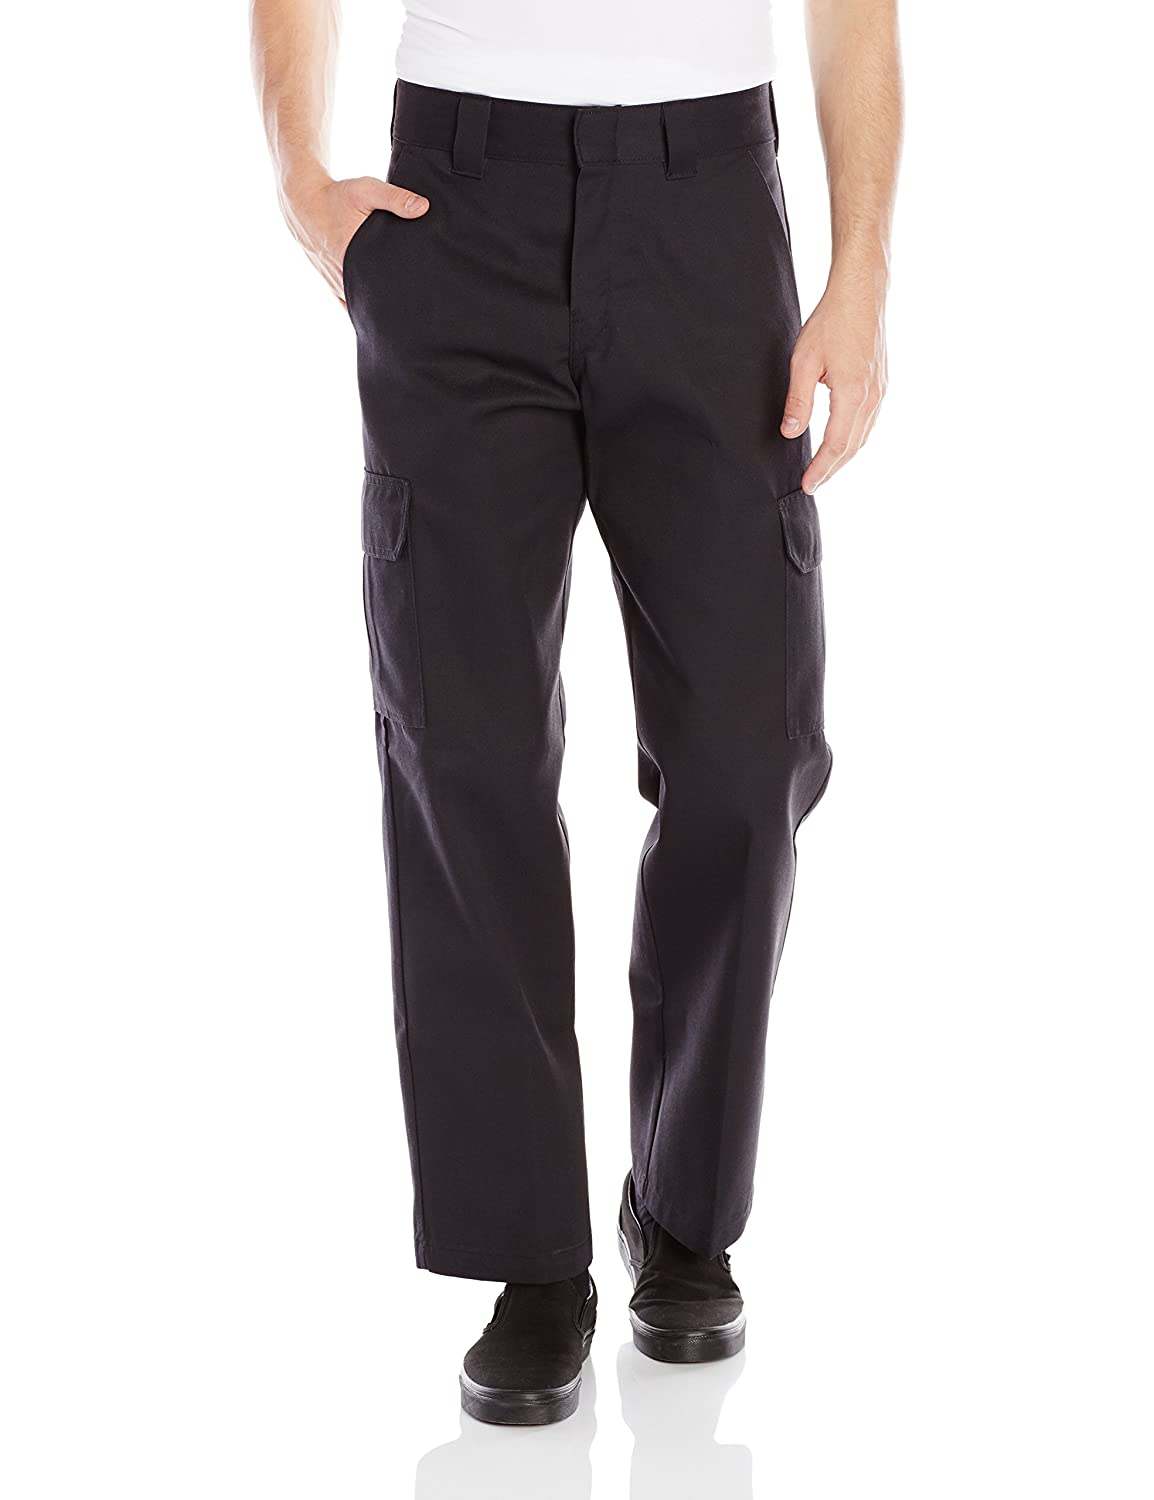 Dickies mens Relaxed Fit Straight Leg Cargo Work Pant Williamson Dickie Mfg Co.